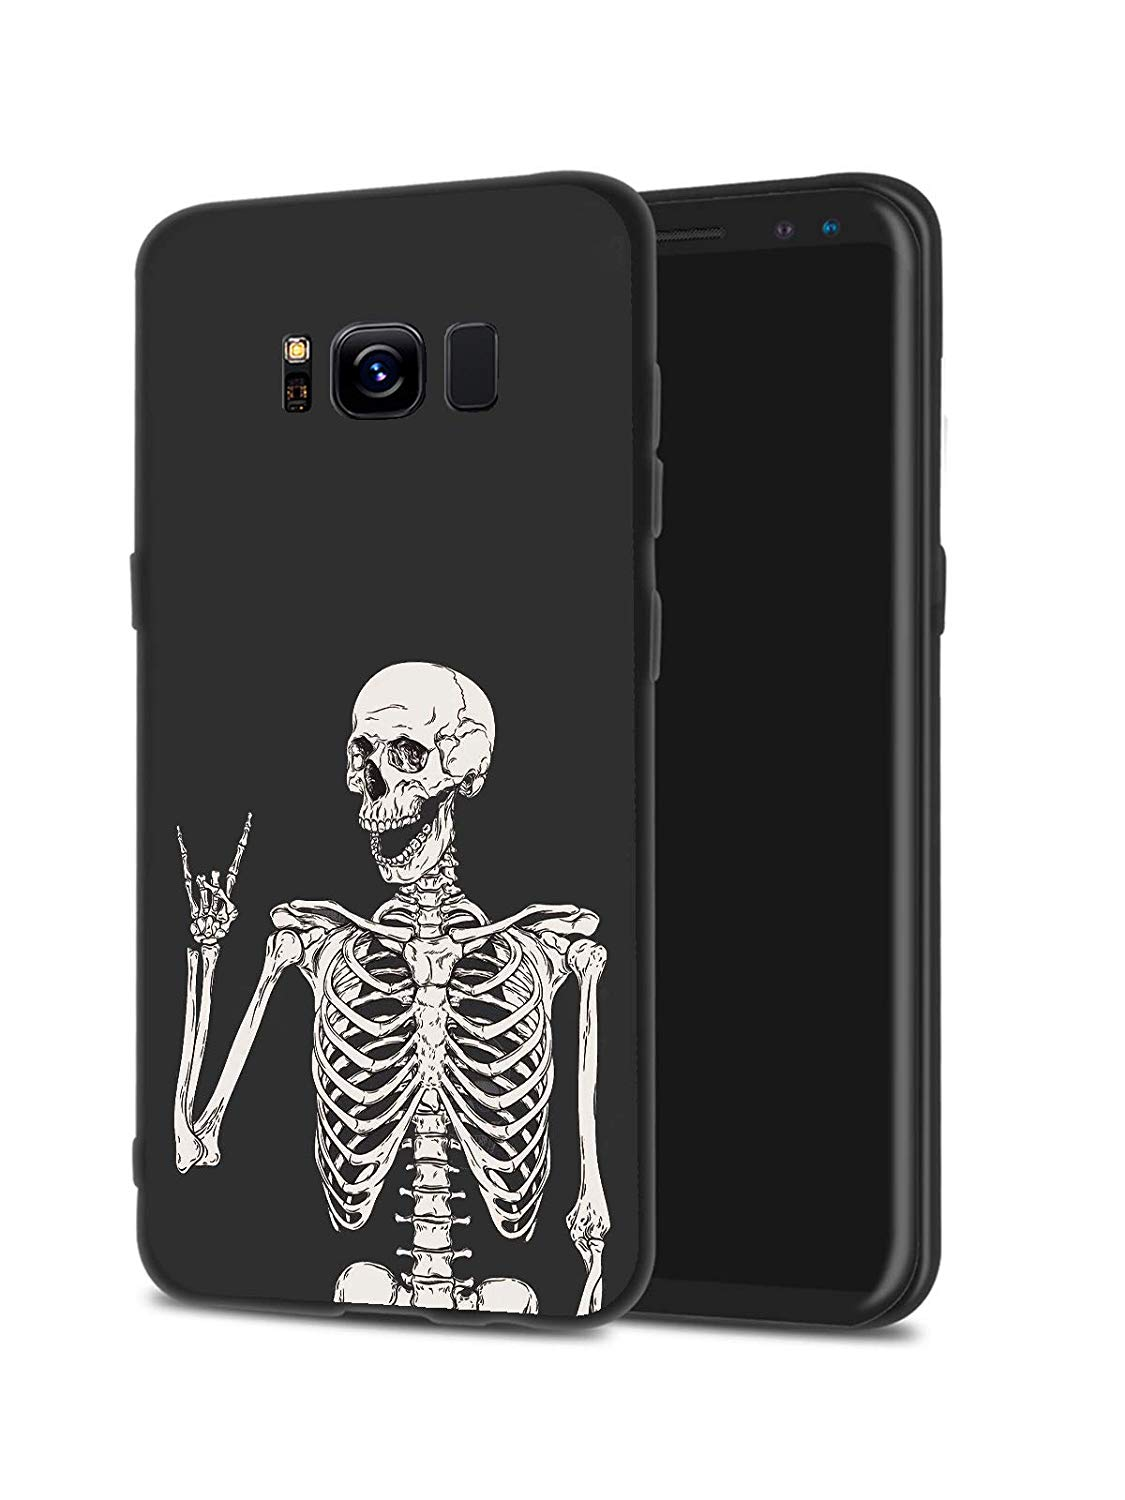 LuGeKe Skeleton Phone Case Cover for Samsung Galaxy S8 Smile Skull Printed  Phone Cover Shell Frame for Samsung Galaxy Drop Protection Reinforced.